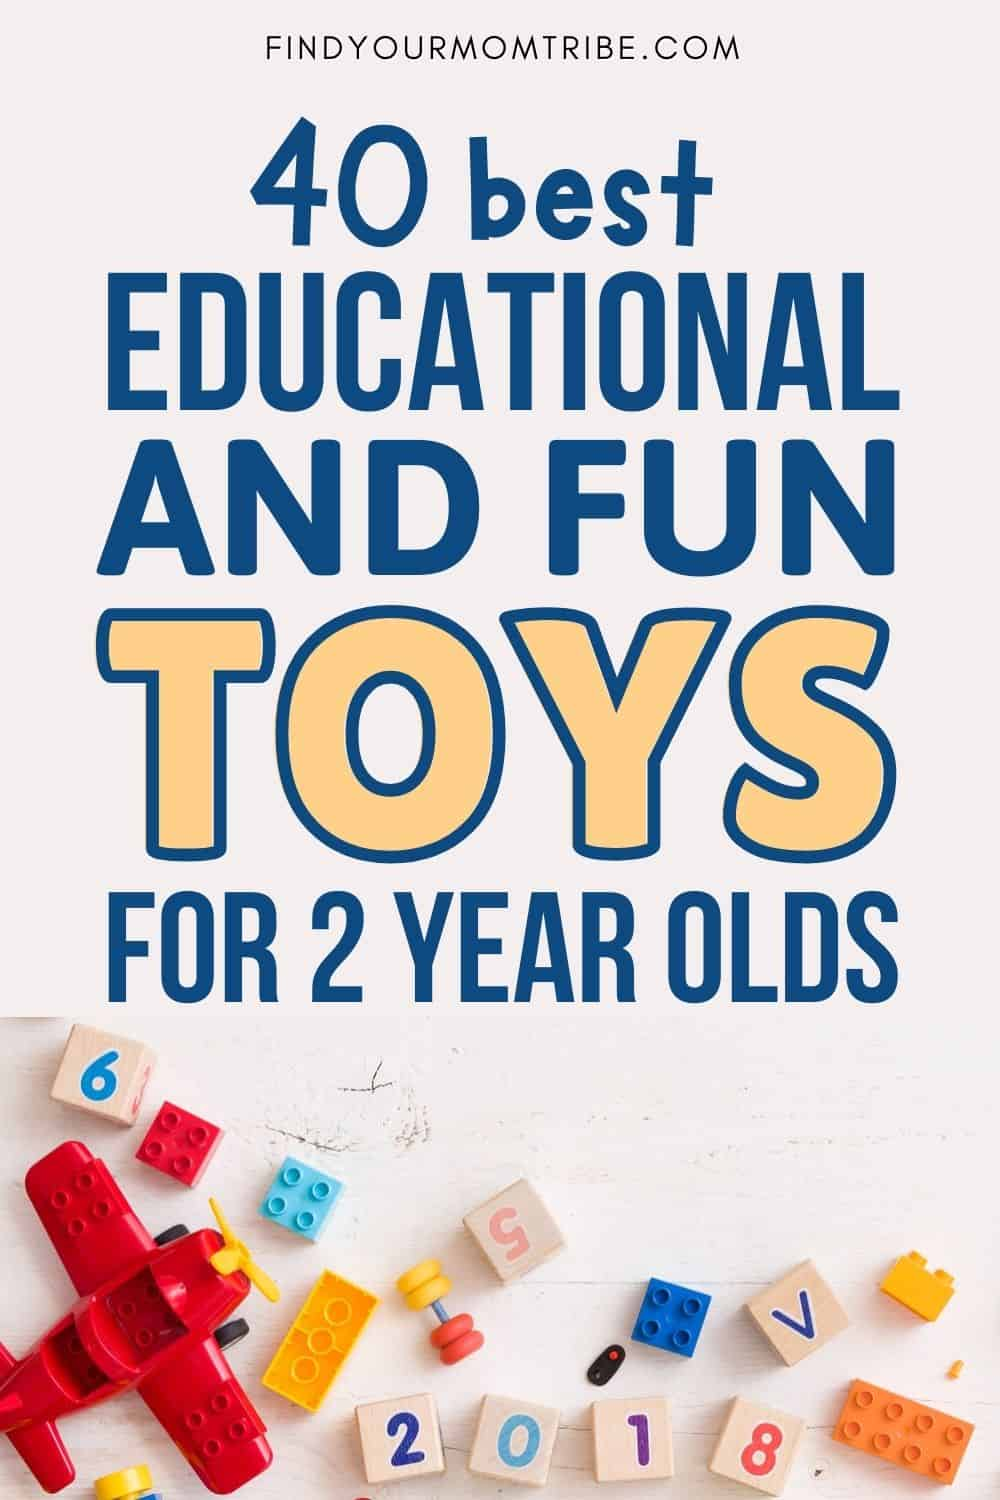 Best Educational And Fun Toys For 2 Year Olds Pinterest